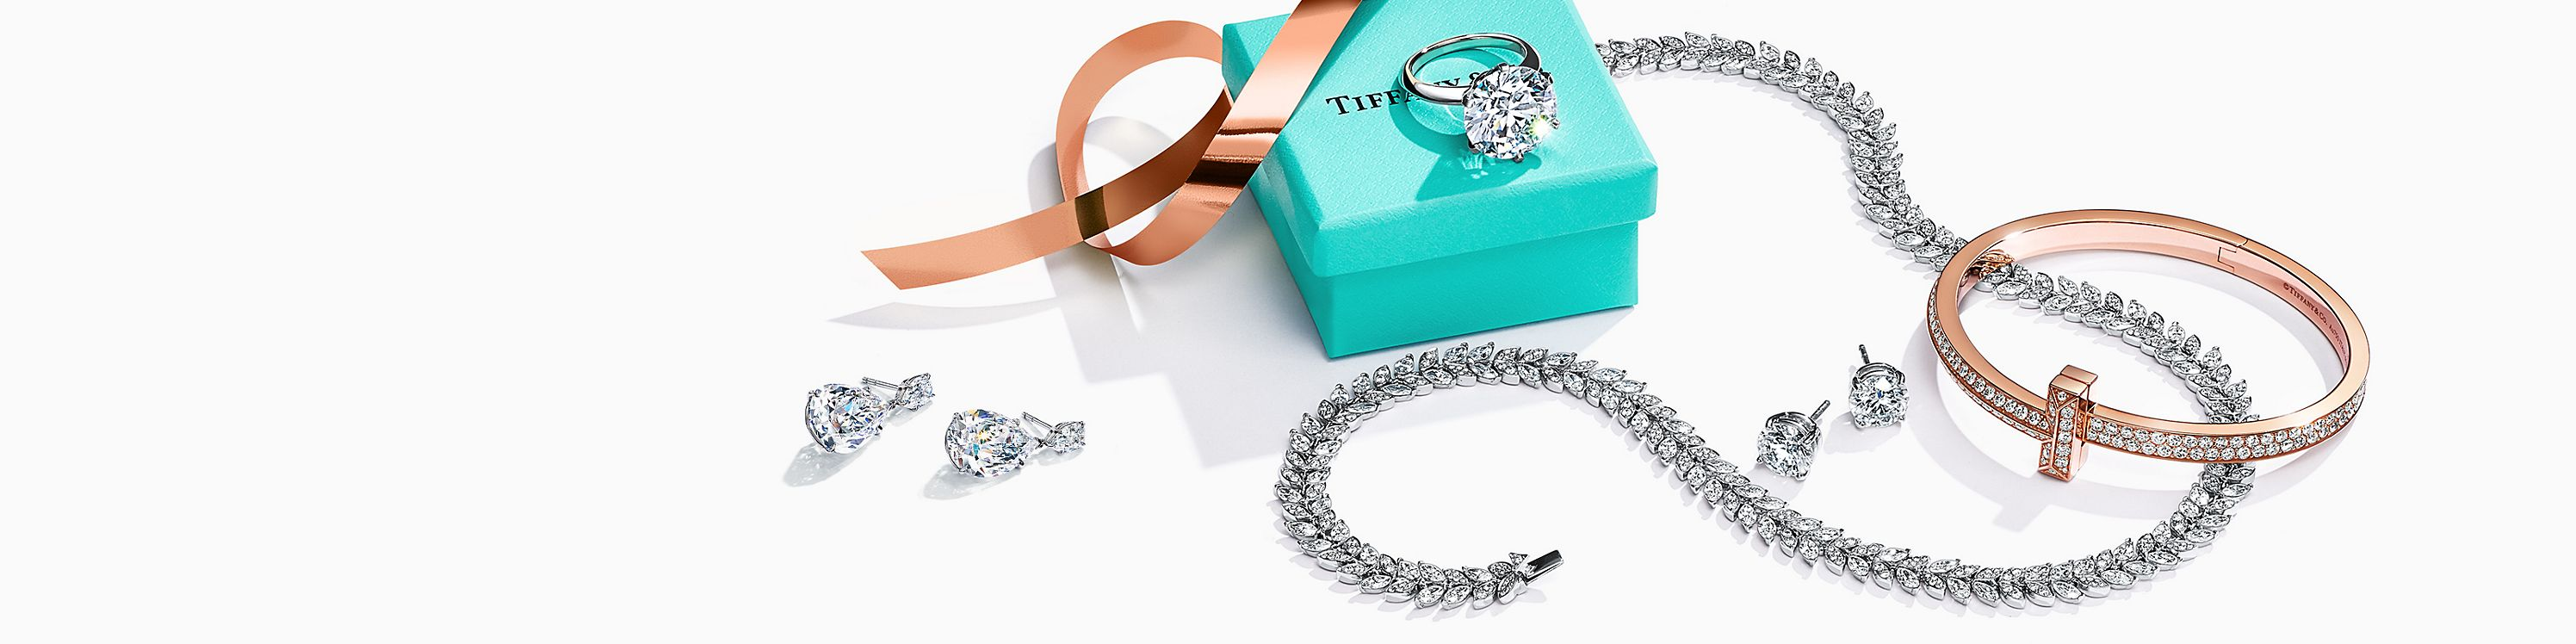 Подарки Tiffany & Co. для нее